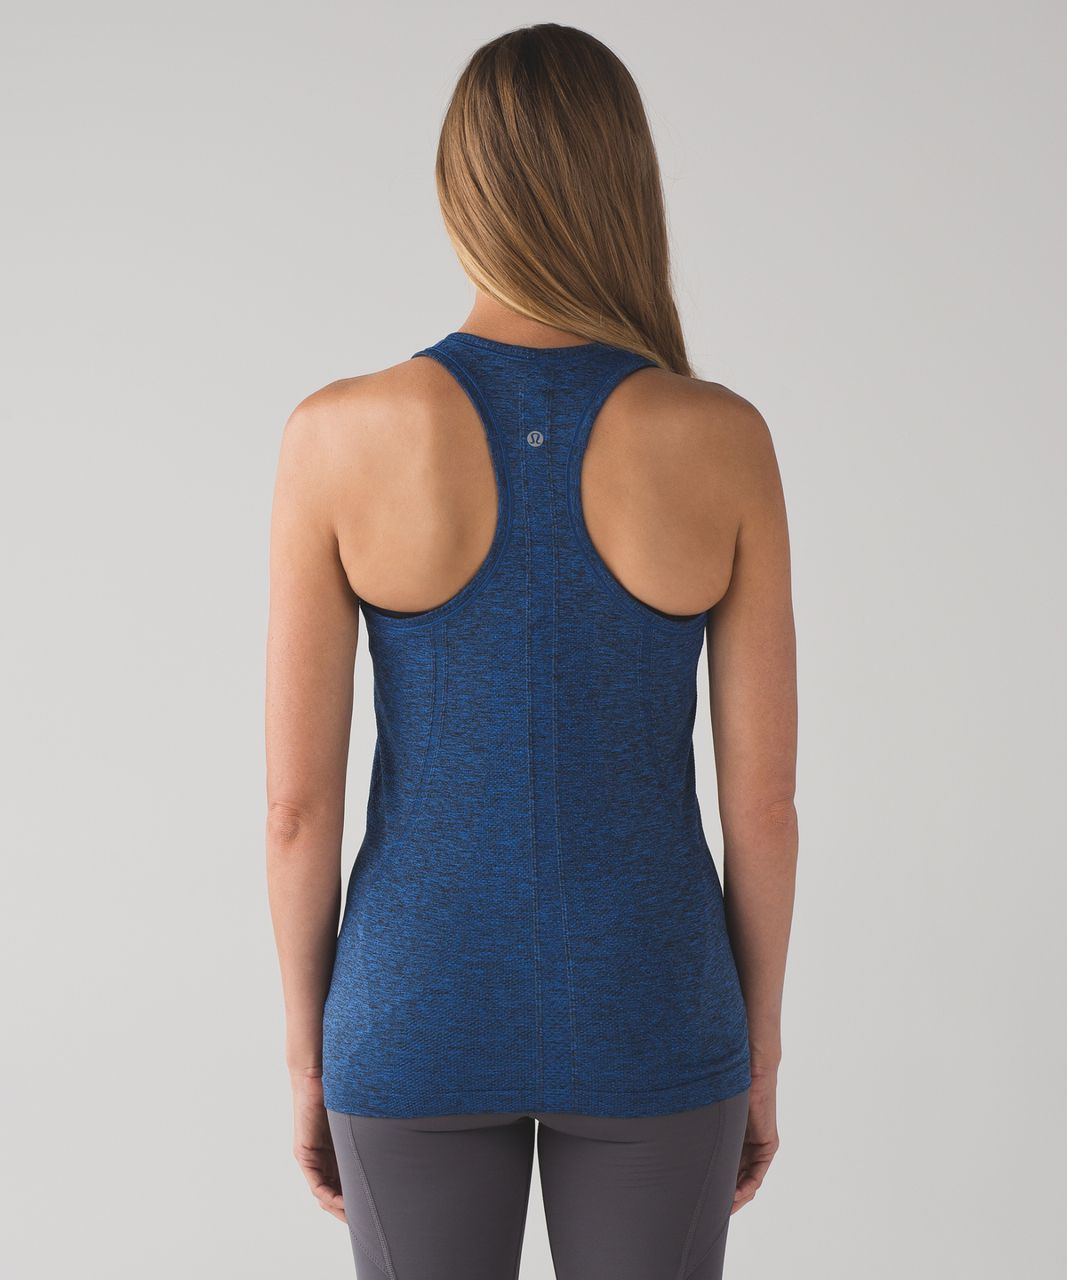 Lululemon Swiftly Tech Racerback - Cerulean Blue / Black